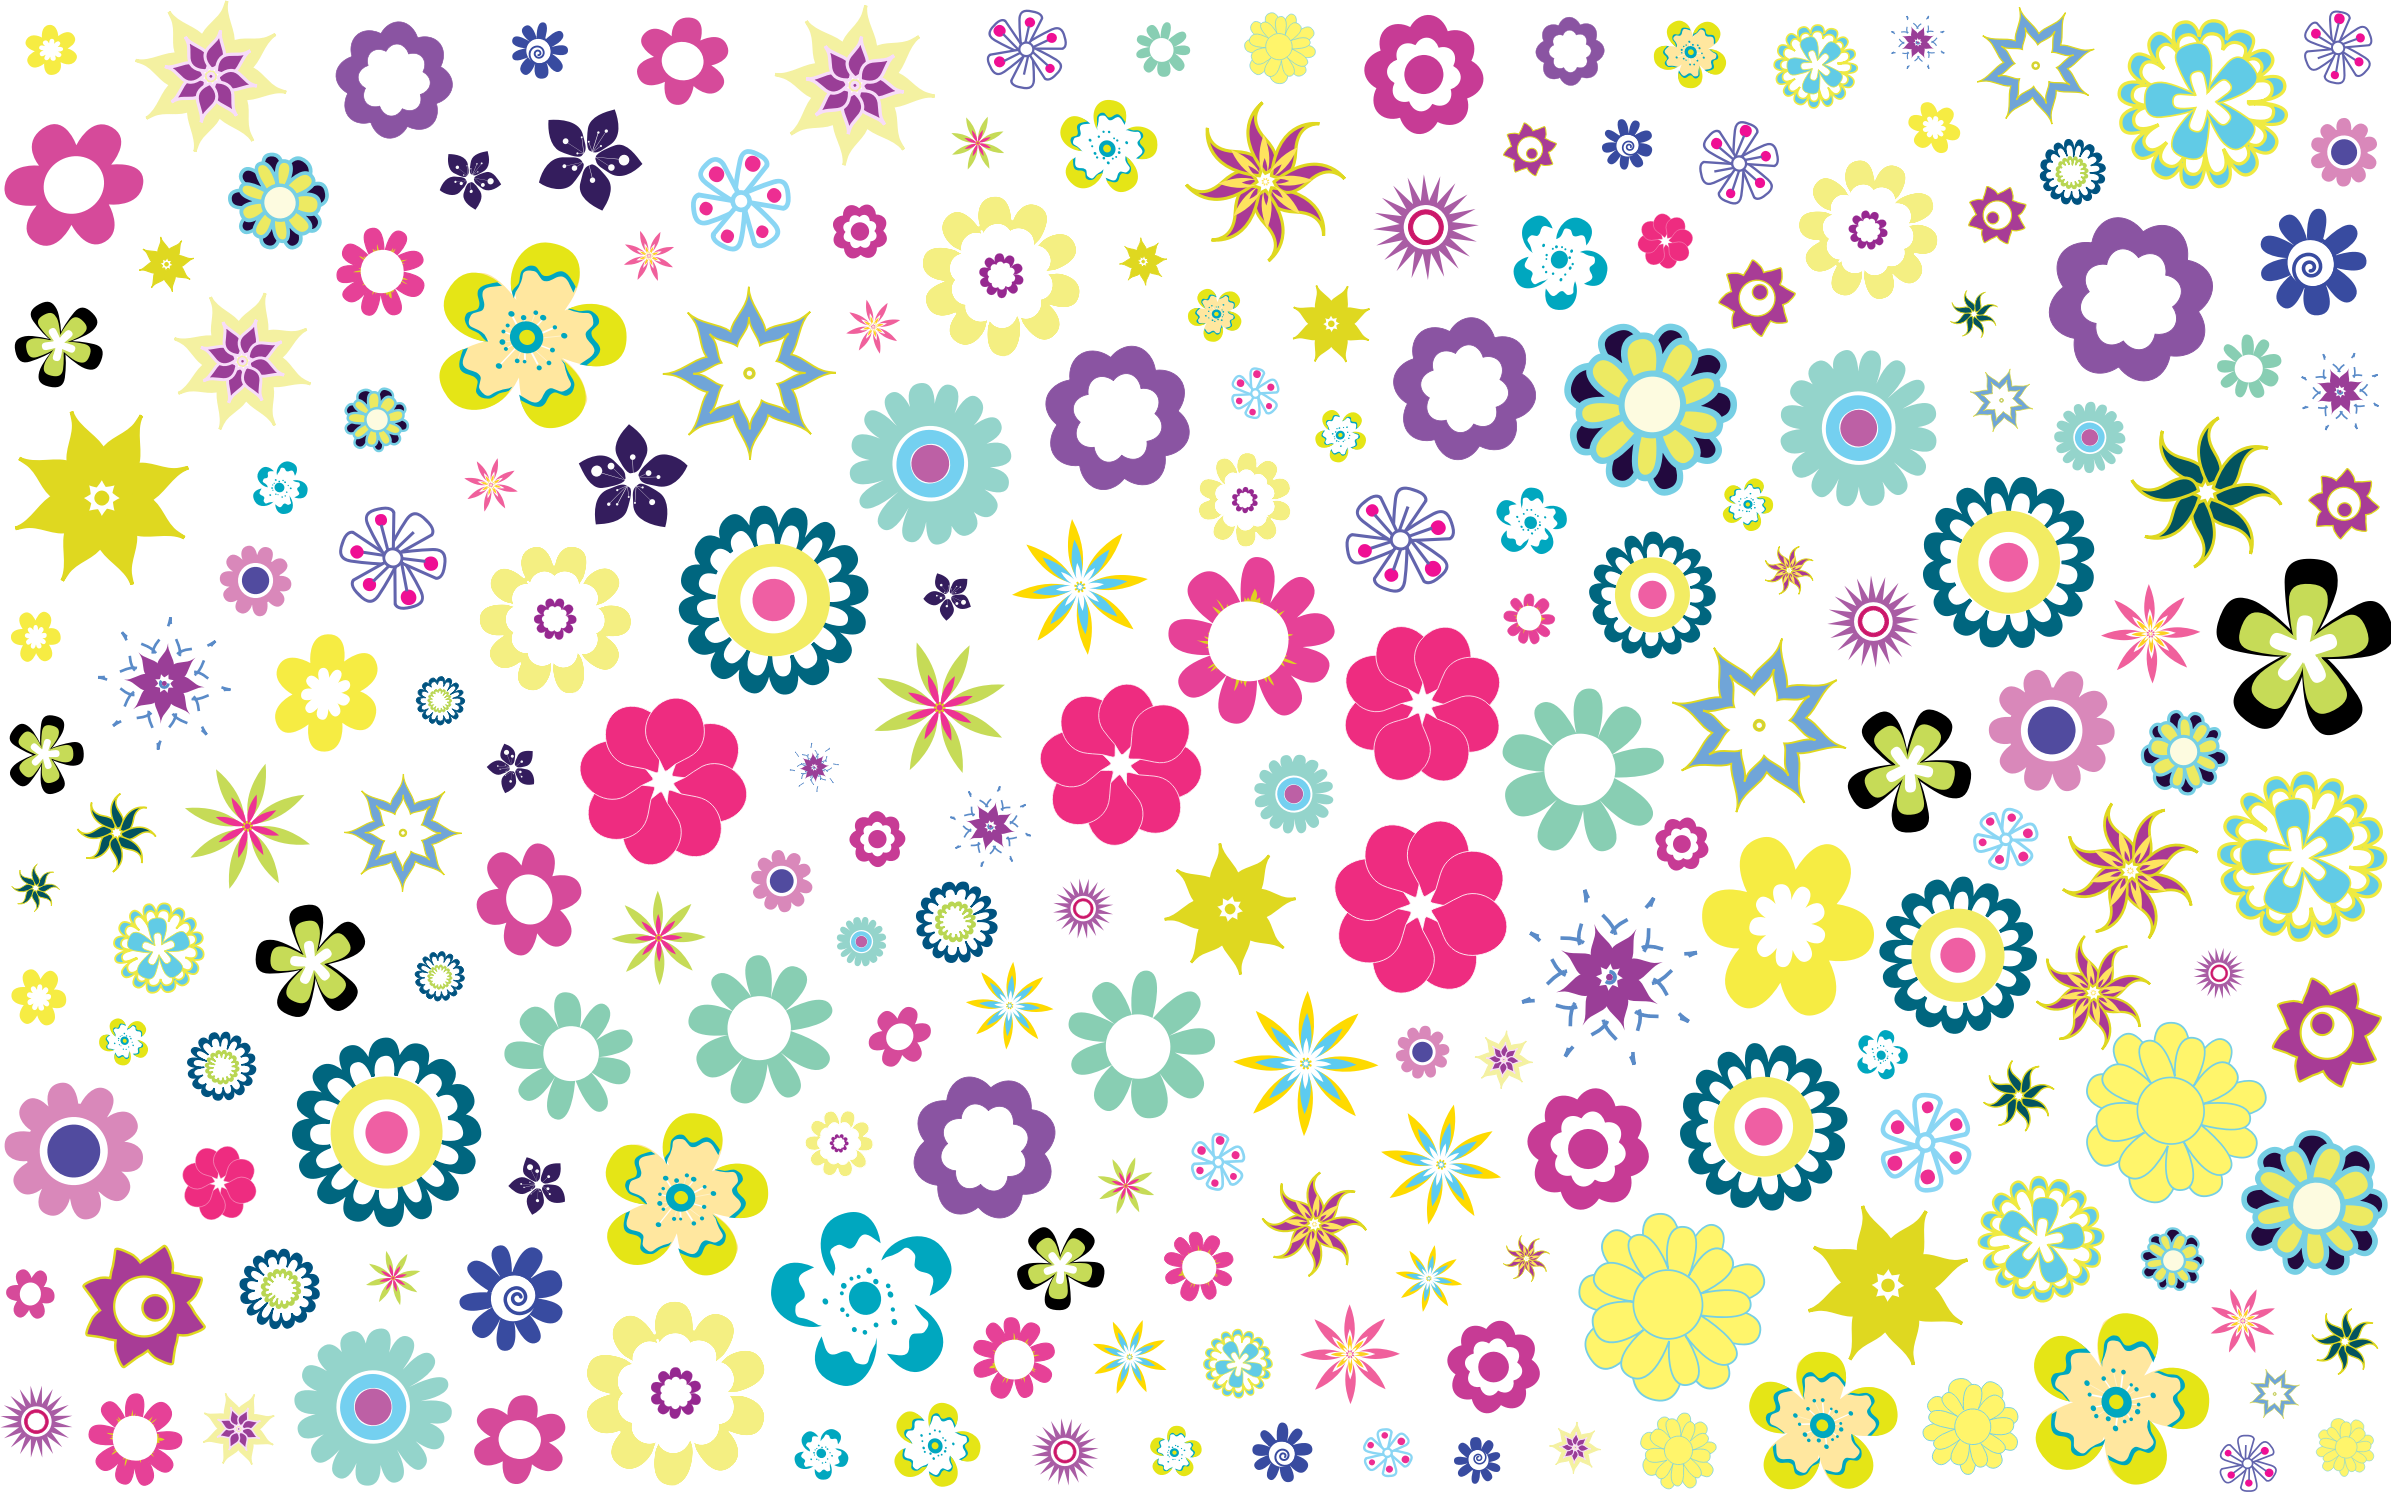 Floral background png. Colorful no black icons